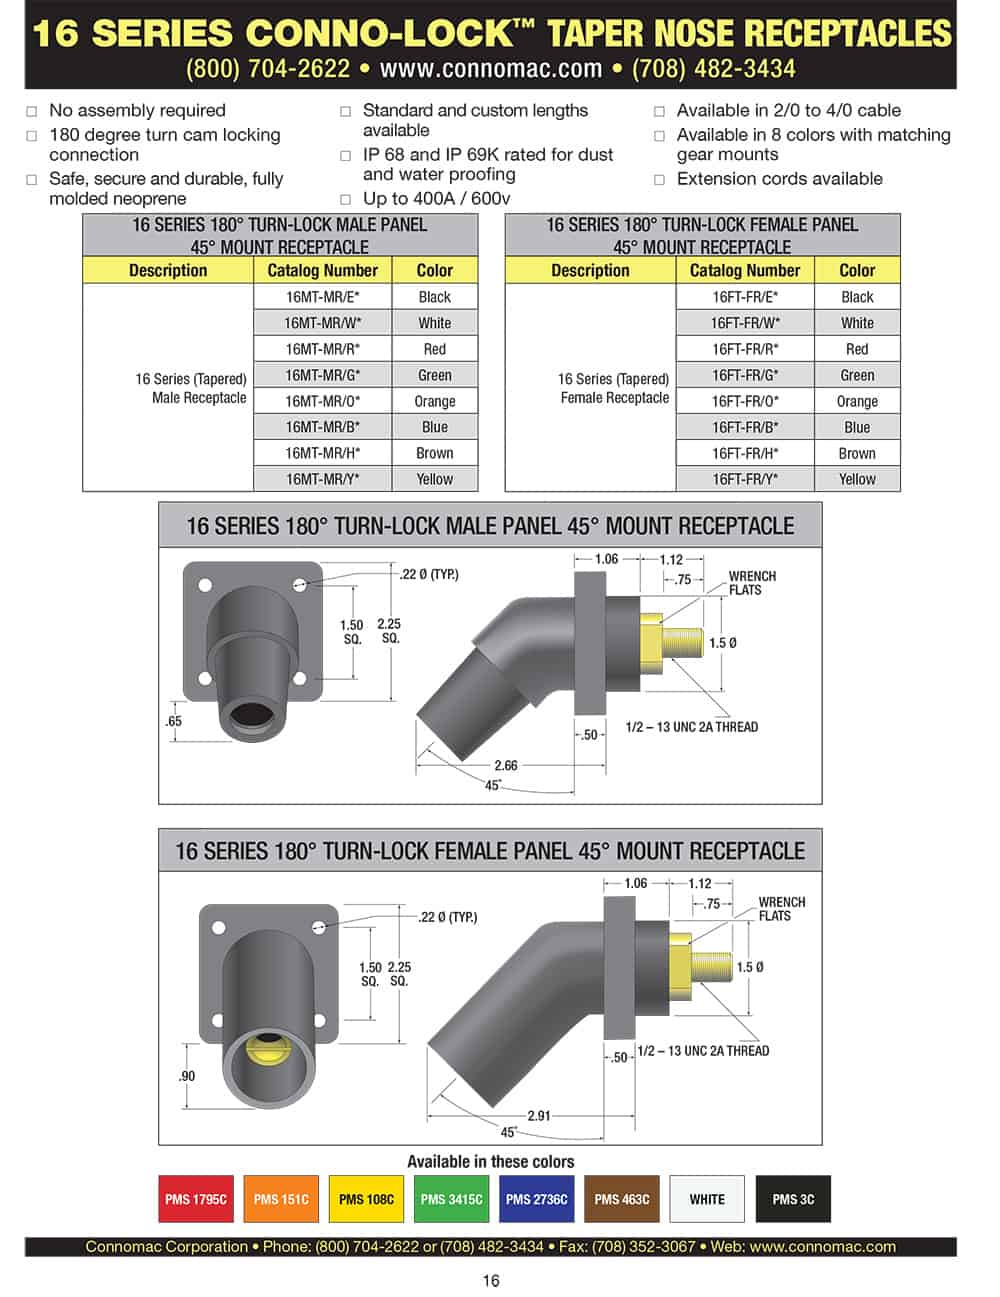 Conno Lock 16 series taper nose receptacles spec sheet page 2